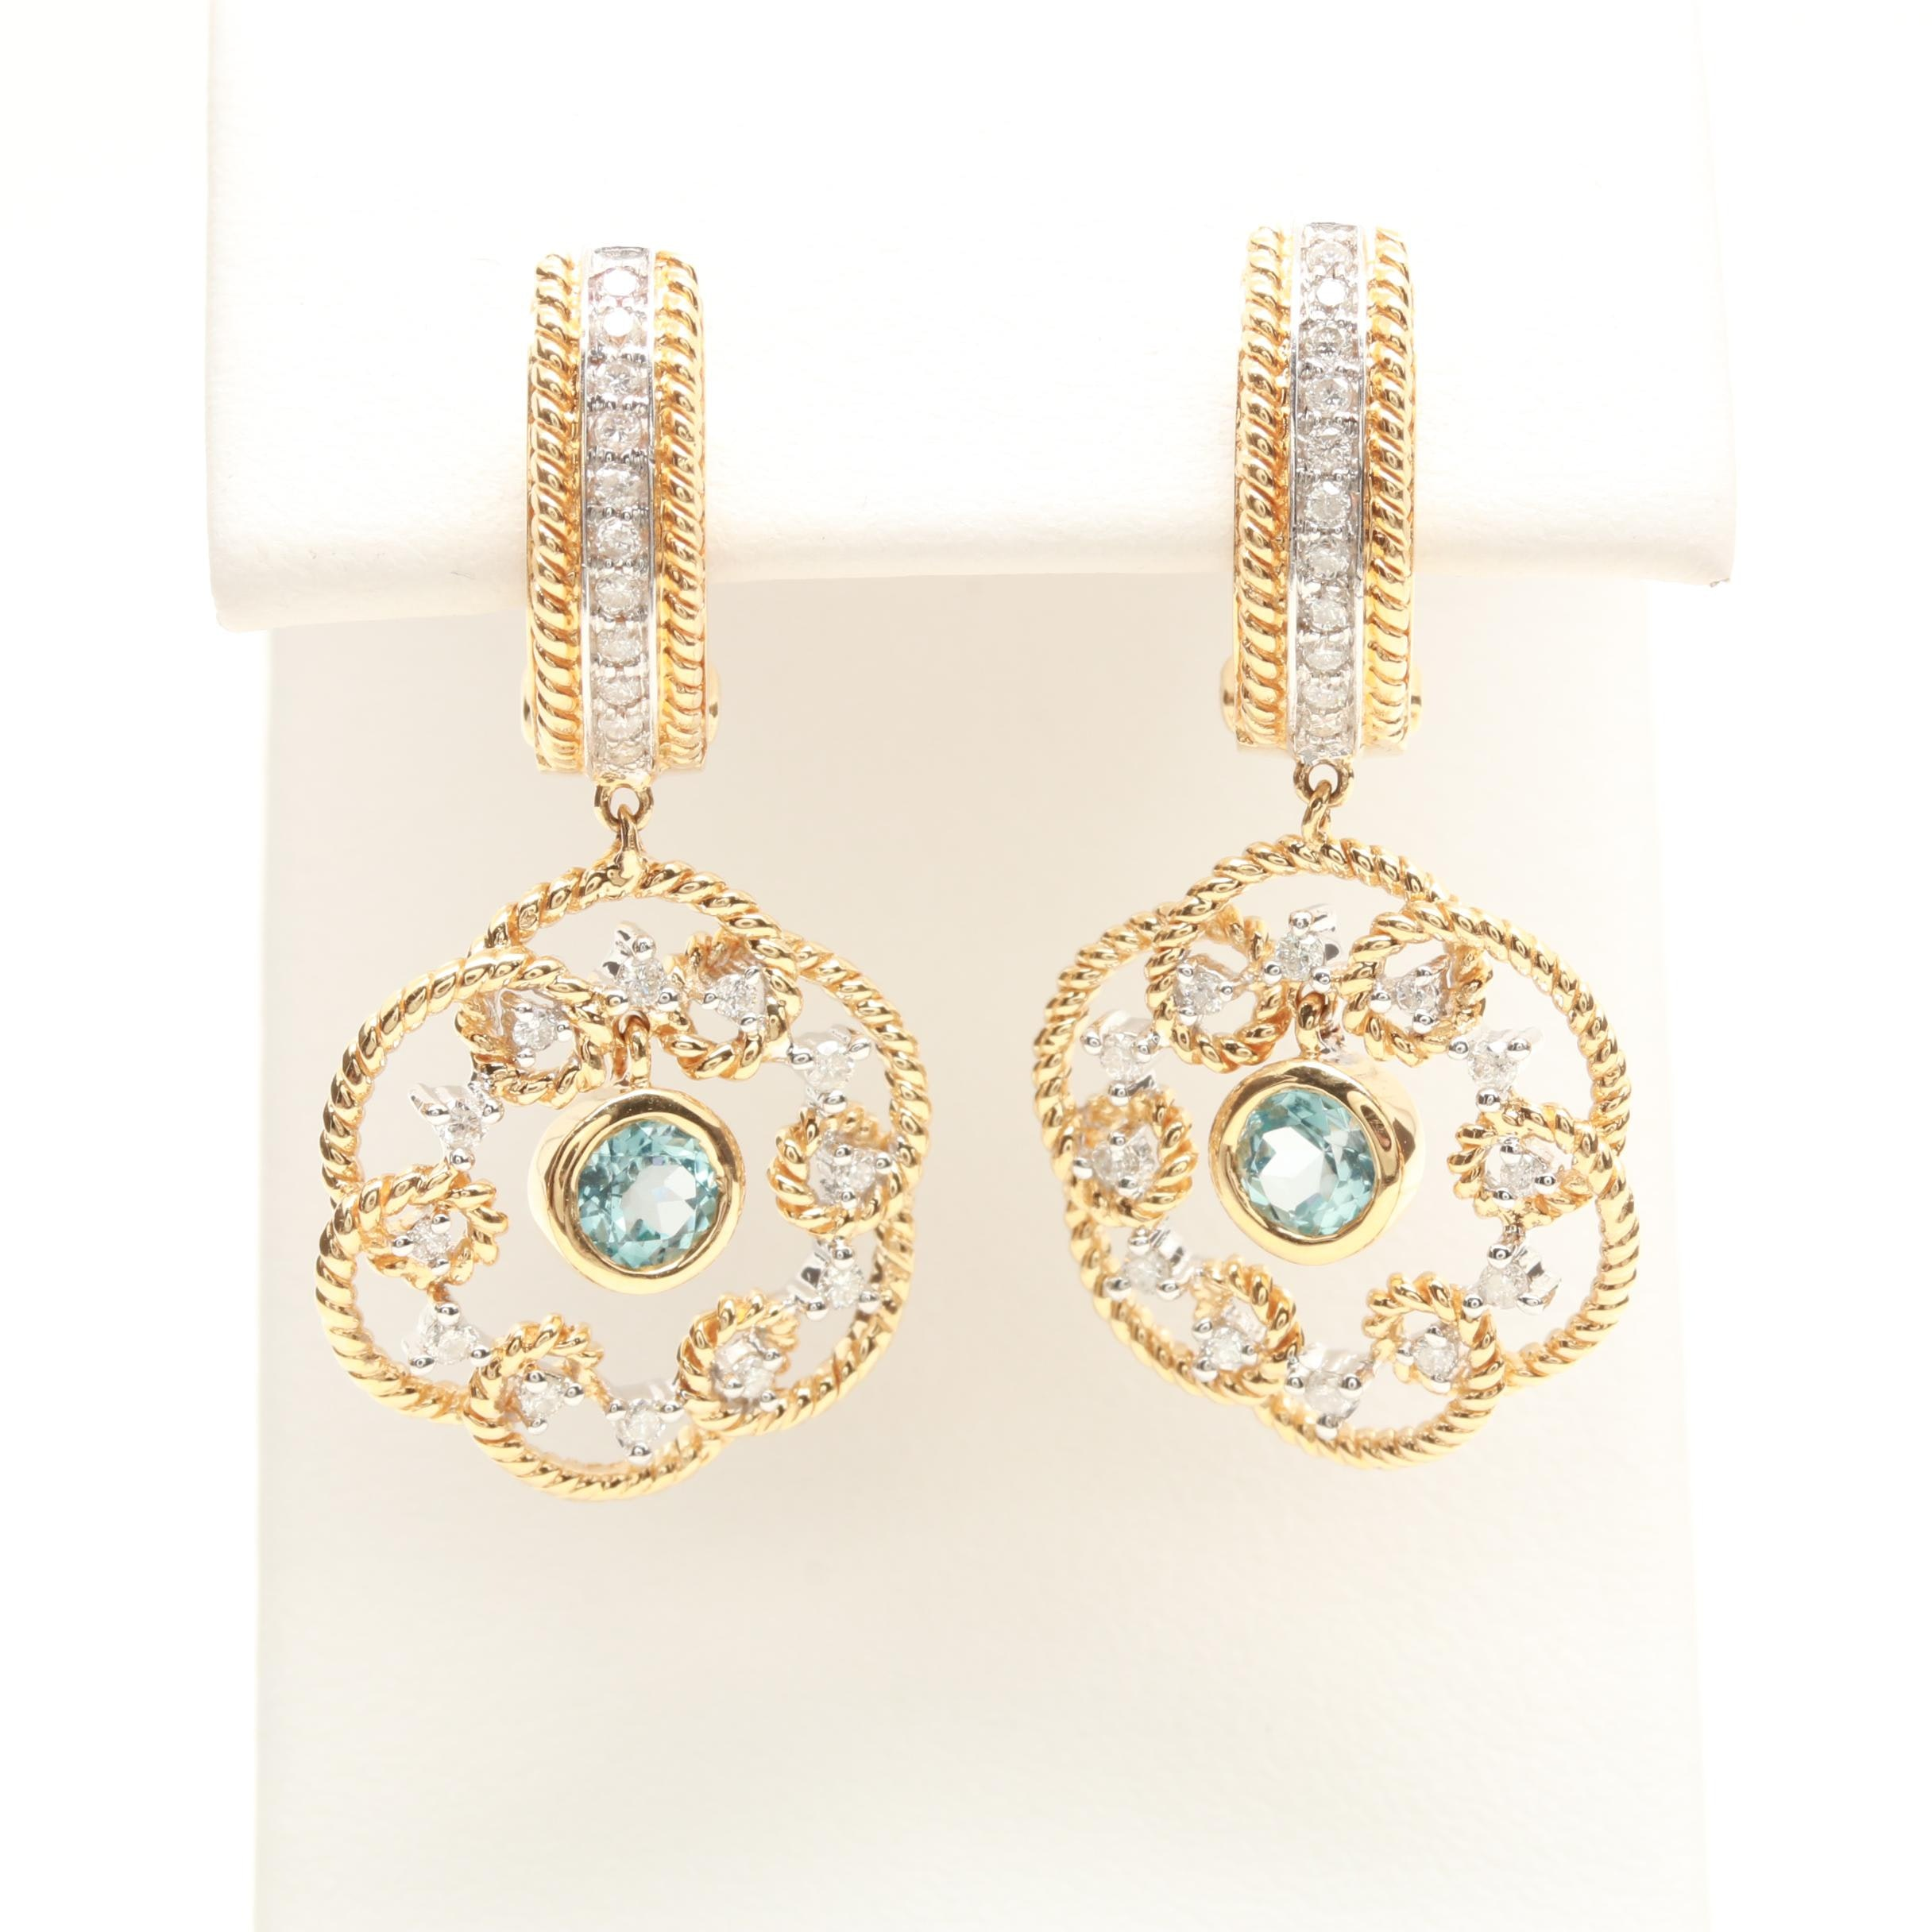 14K Yellow Gold Topaz and Diamond Earrings with White Gold Accents